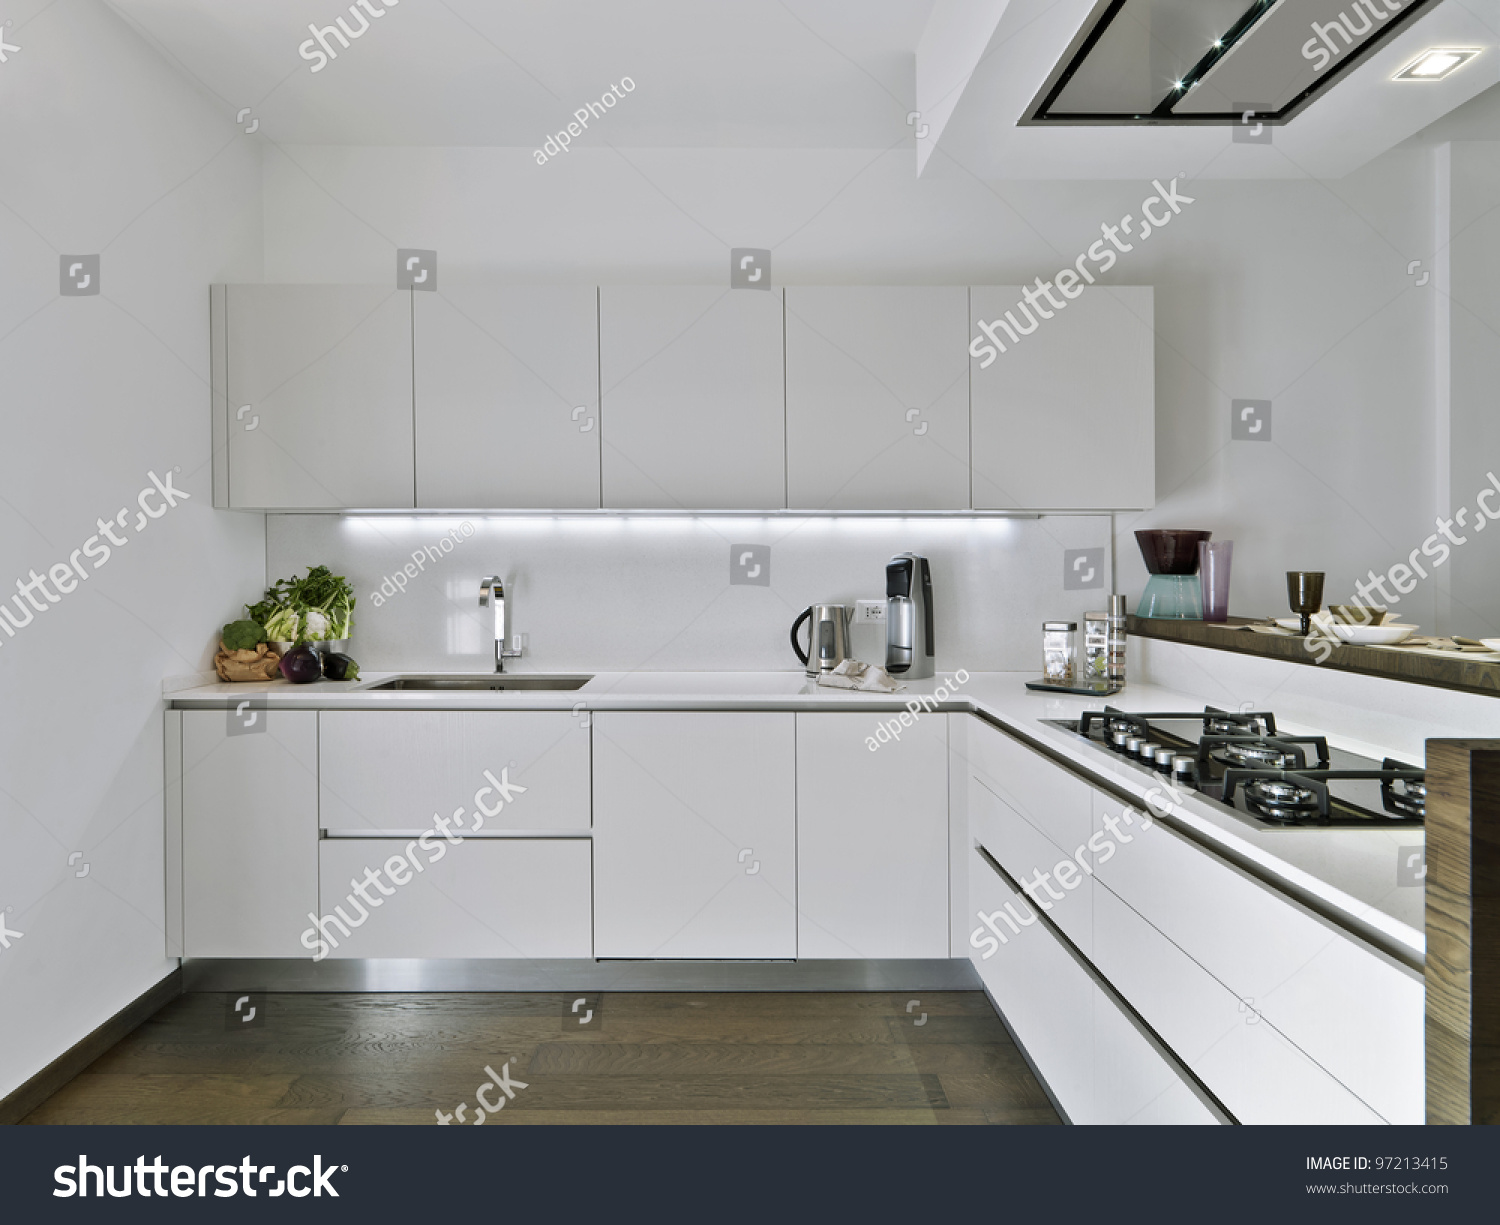 White Kitchens With Wood Floors Modern White Kitchen Wood Floor Stock Photo 97213415 Shutterstock